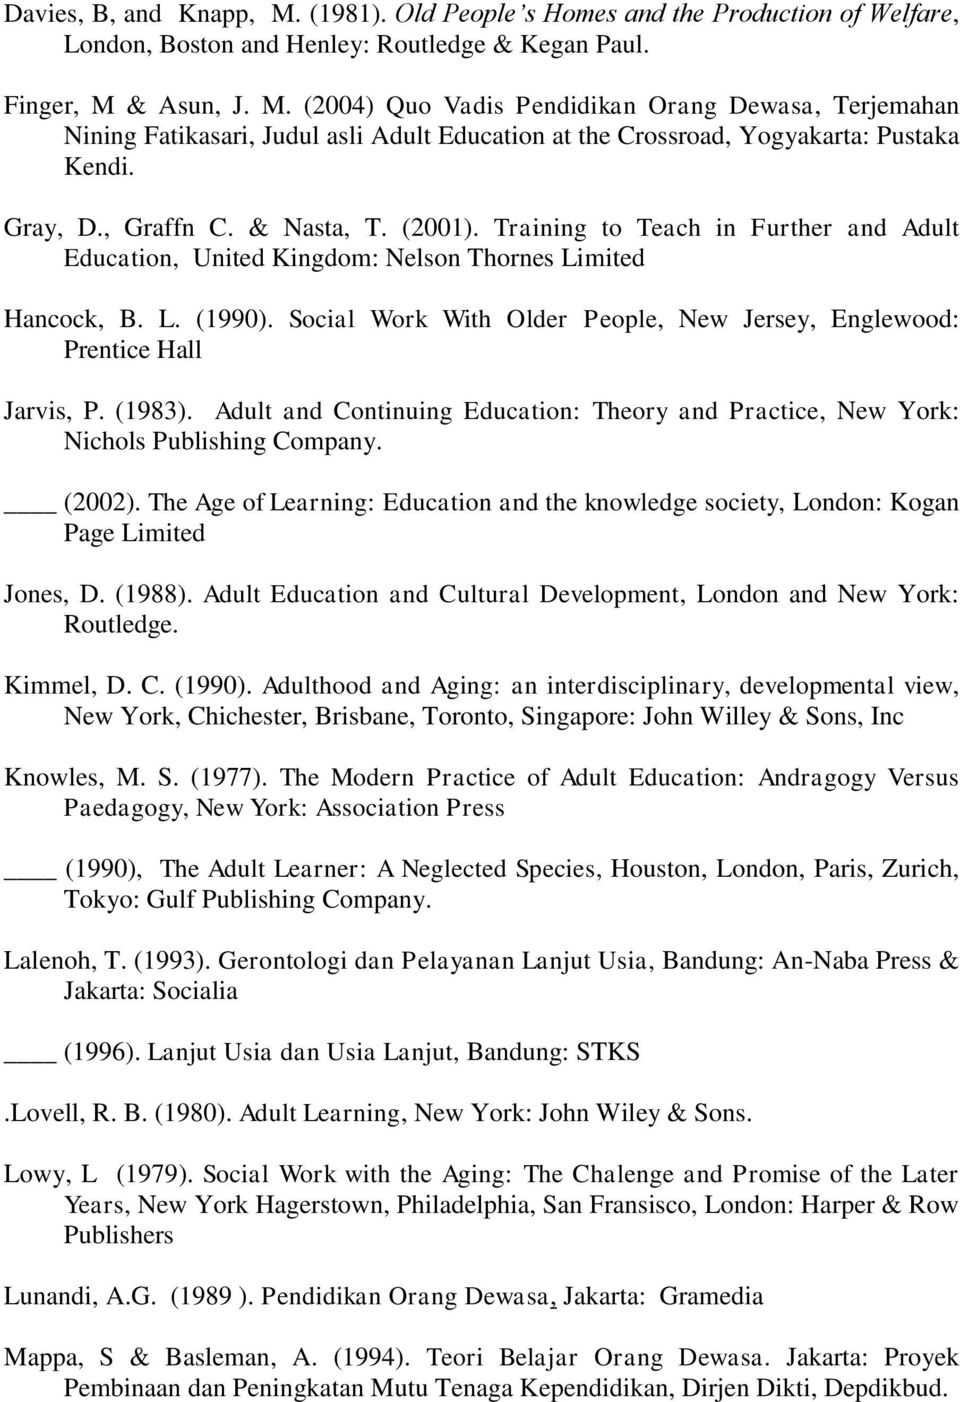 Social Work With Older People, New Jersey, Englewood: Prentice Hall Jarvis, P. (1983). Adult and Continuing Education: Theory and Practice, New York: Nichols Publishing Company. (2002).